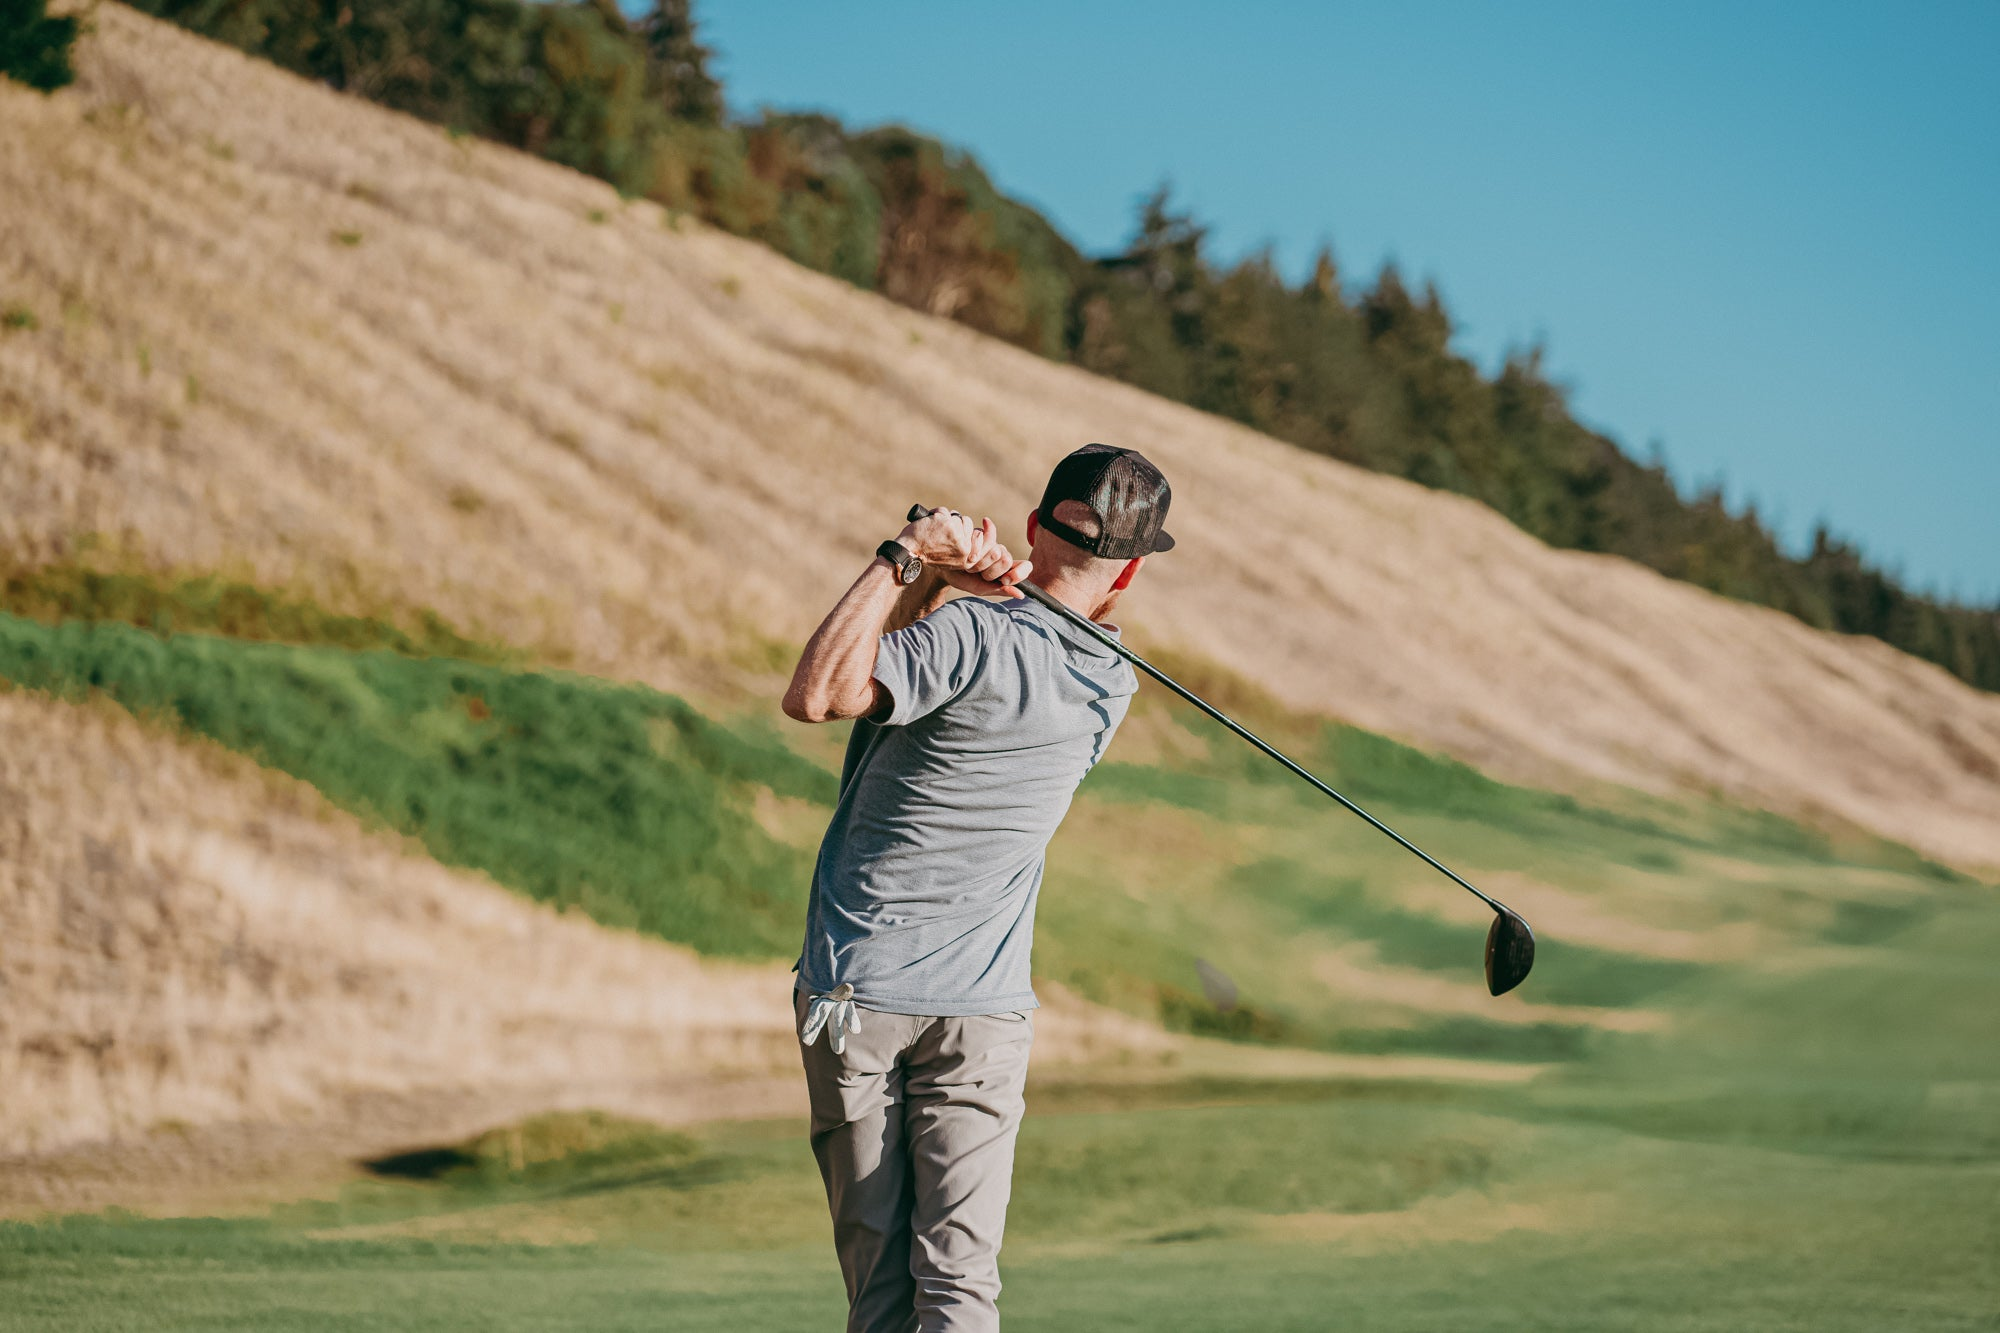 Five Tips For More Confidence On the Golf Course